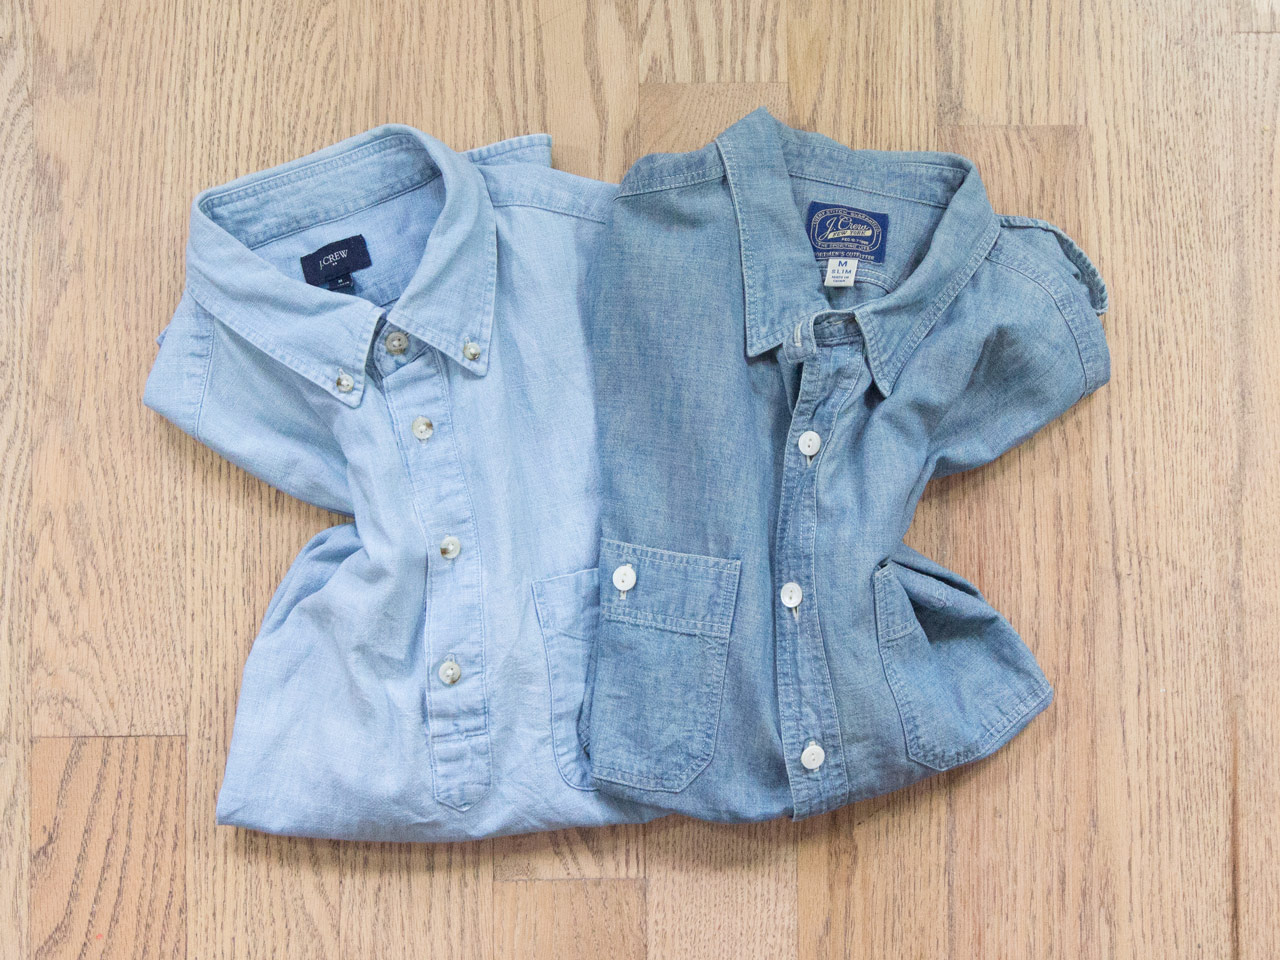 effortless essentials minimalist wardrobe - chambray shirts